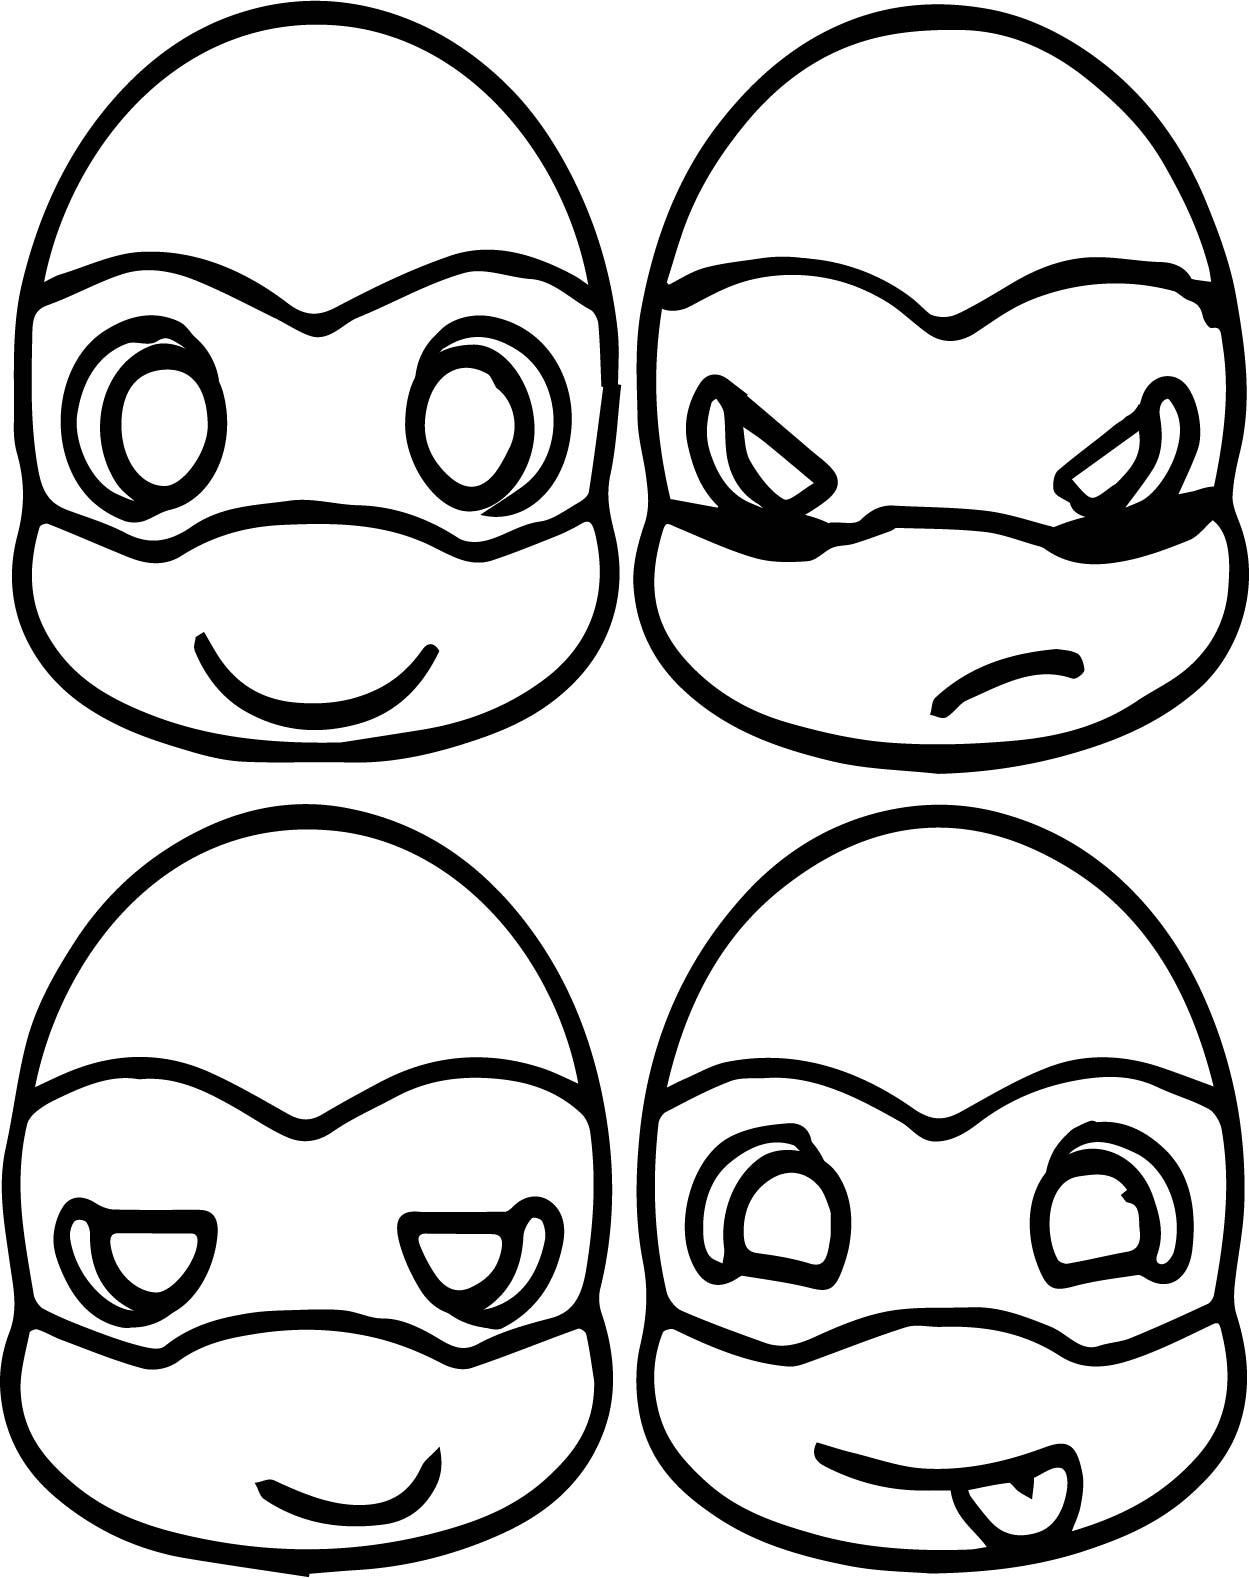 Cute ninja turtle head coloring page for Coloring pages turtles ninja